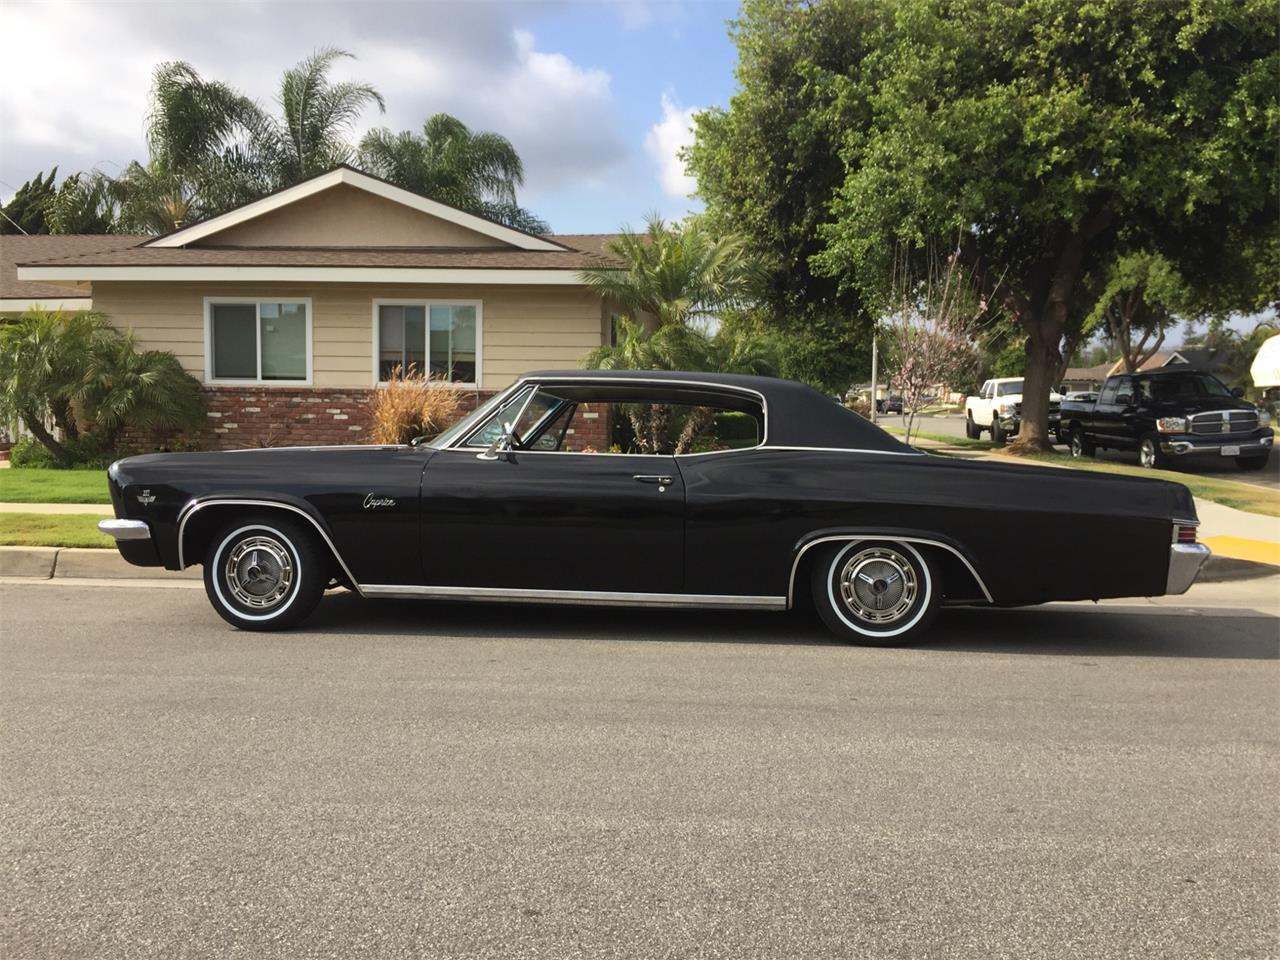 1966 Chevrolet Caprice (CC-1090648) for sale in Whittier, California